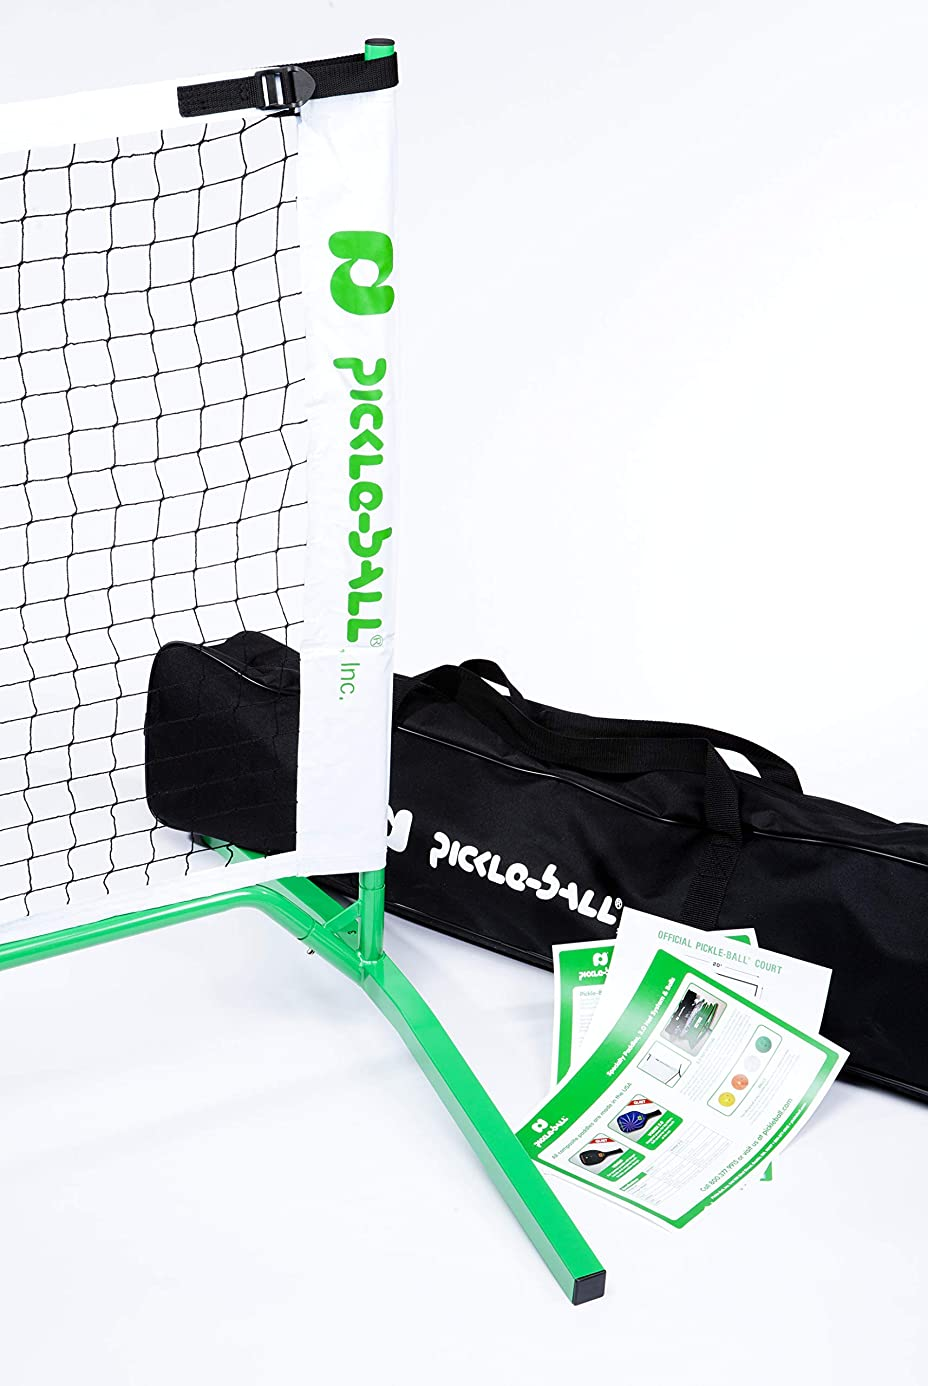 3.0 Portable Pickleball Net System (Set Includes Metal Frame and Net in Carry Bag) | Durable and Easy to Assemble